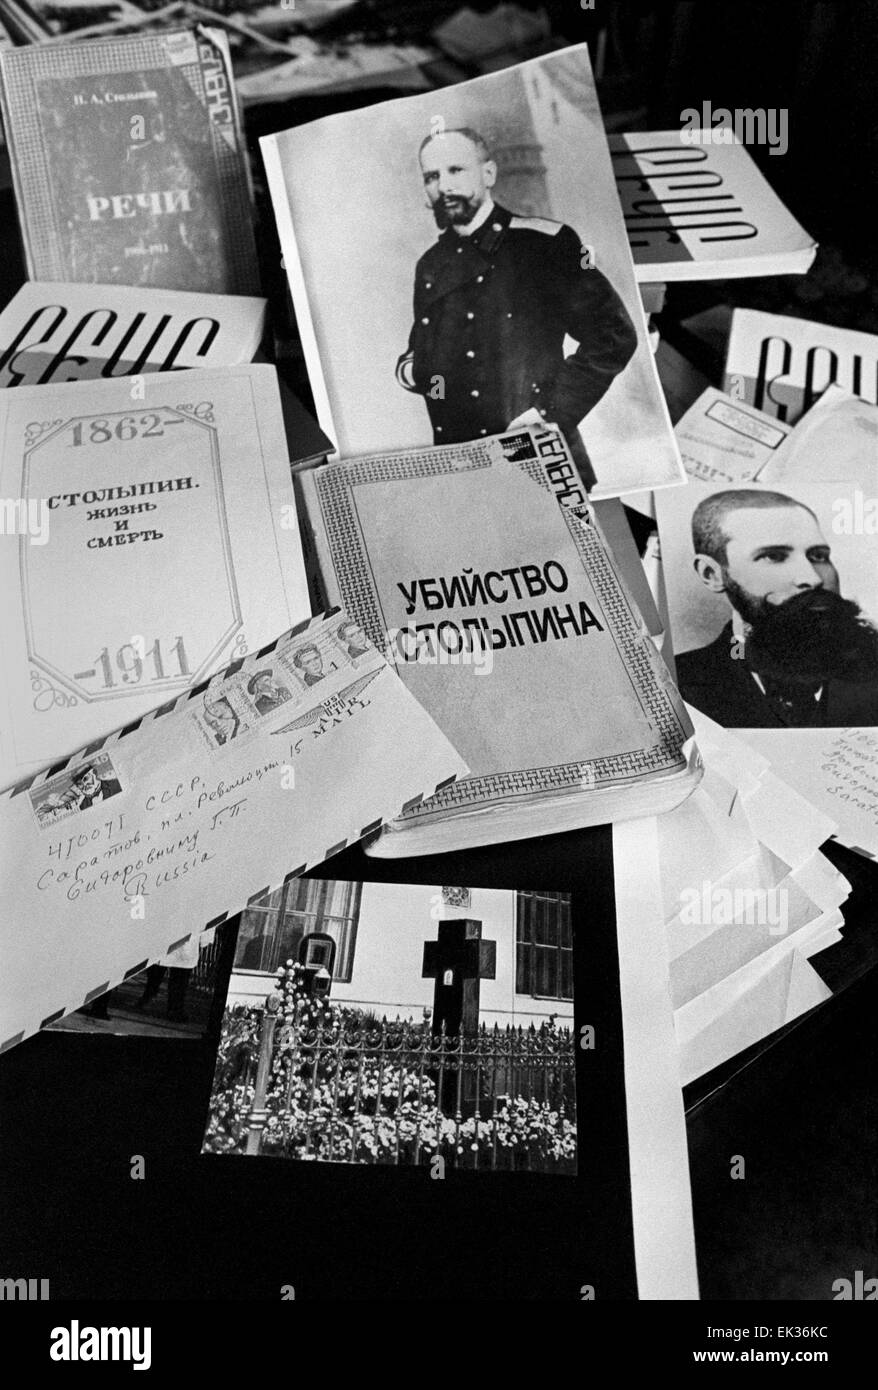 ITAR-TASS: USSR, SARATOV. Material for compilation 'Stolypin: life and death' made by Volga press. - Stock Image